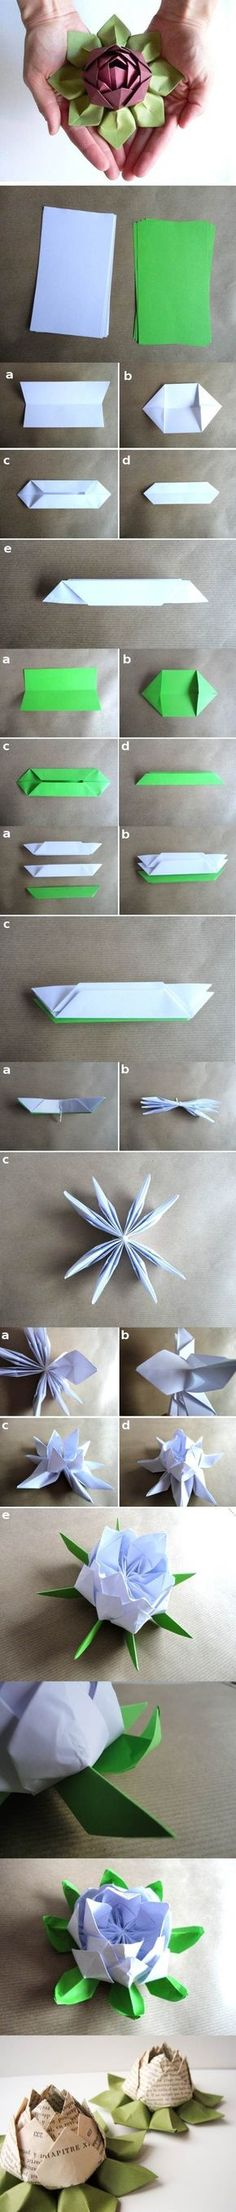 Best Origami Tutorials – Origami Lotus Flower – Simple DIY Origami Tutorial Project - Crafts for adult Diy Origami, Origami Simple, Origami And Kirigami, Origami Paper Art, Useful Origami, Origami Tutorial, Diy Paper, Flower Tutorial, Oragami